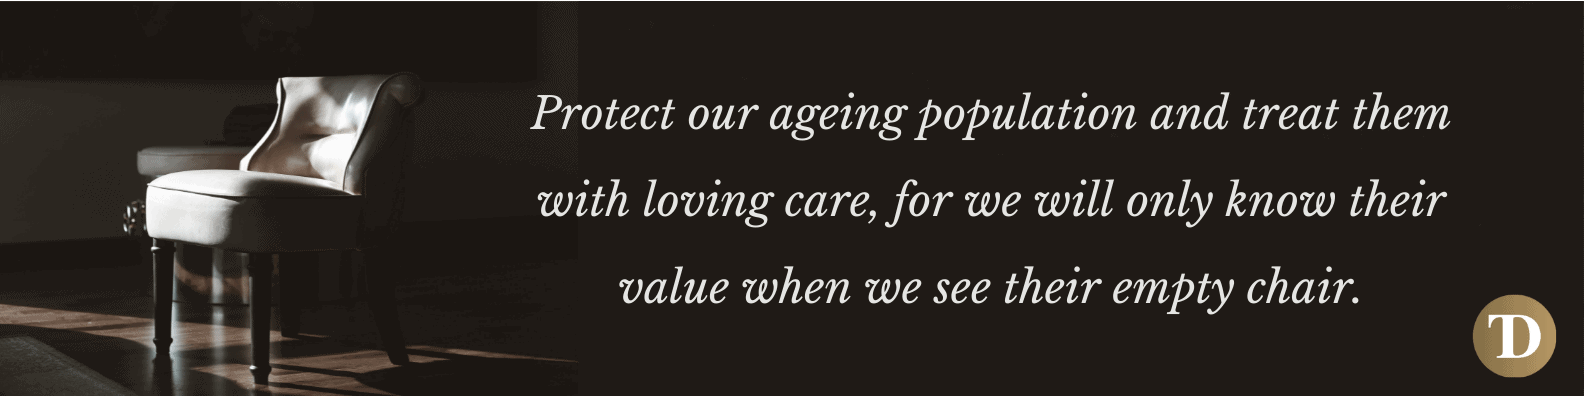 Protect our Aging Population